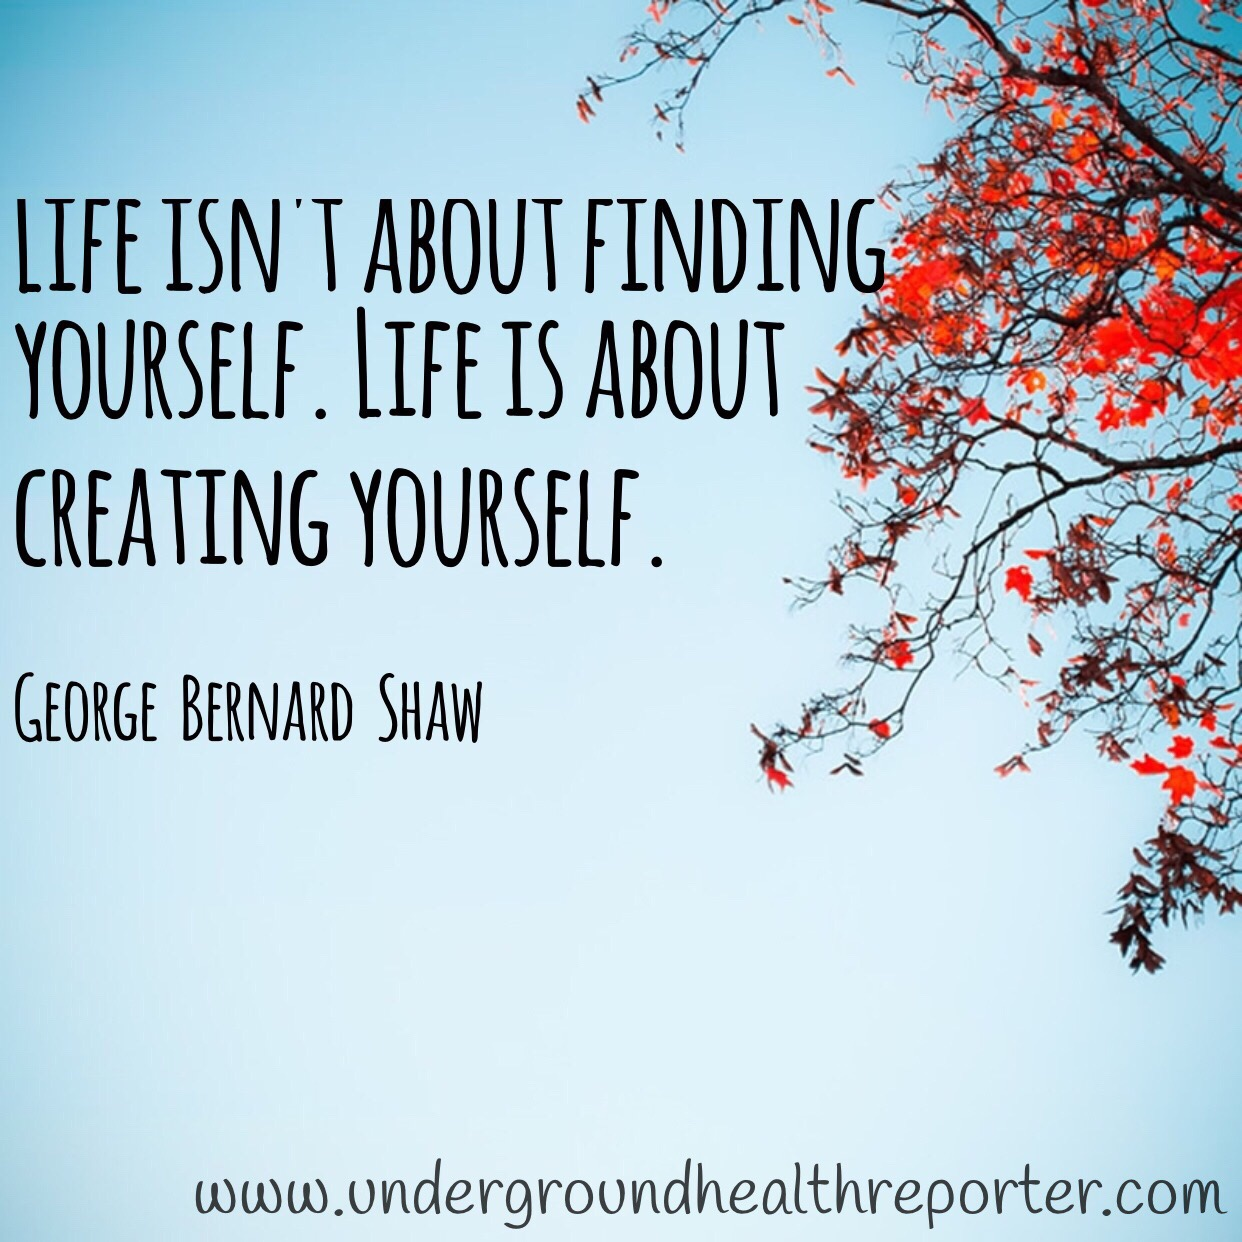 """George Bernard Shaw said: """"Life is about creating yourself"""""""